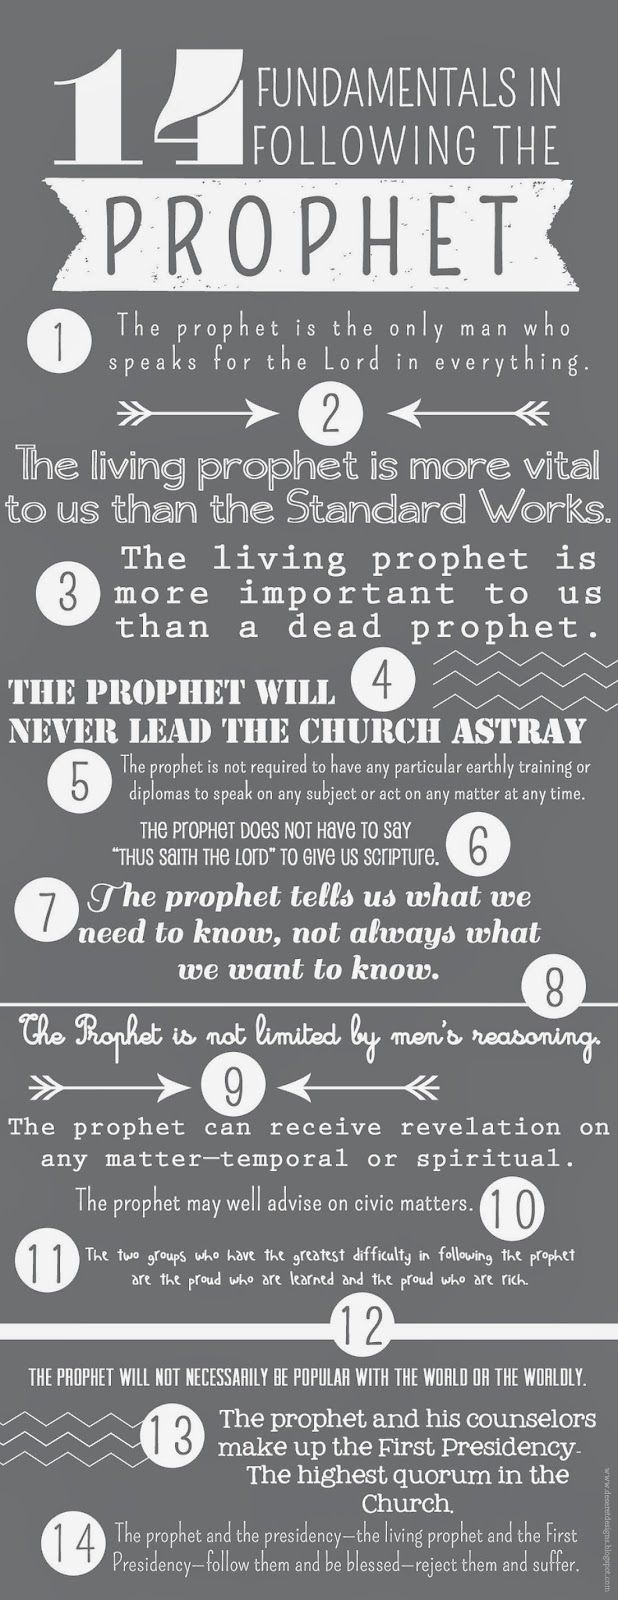 The 14 Fundamentals in Following the Prophet